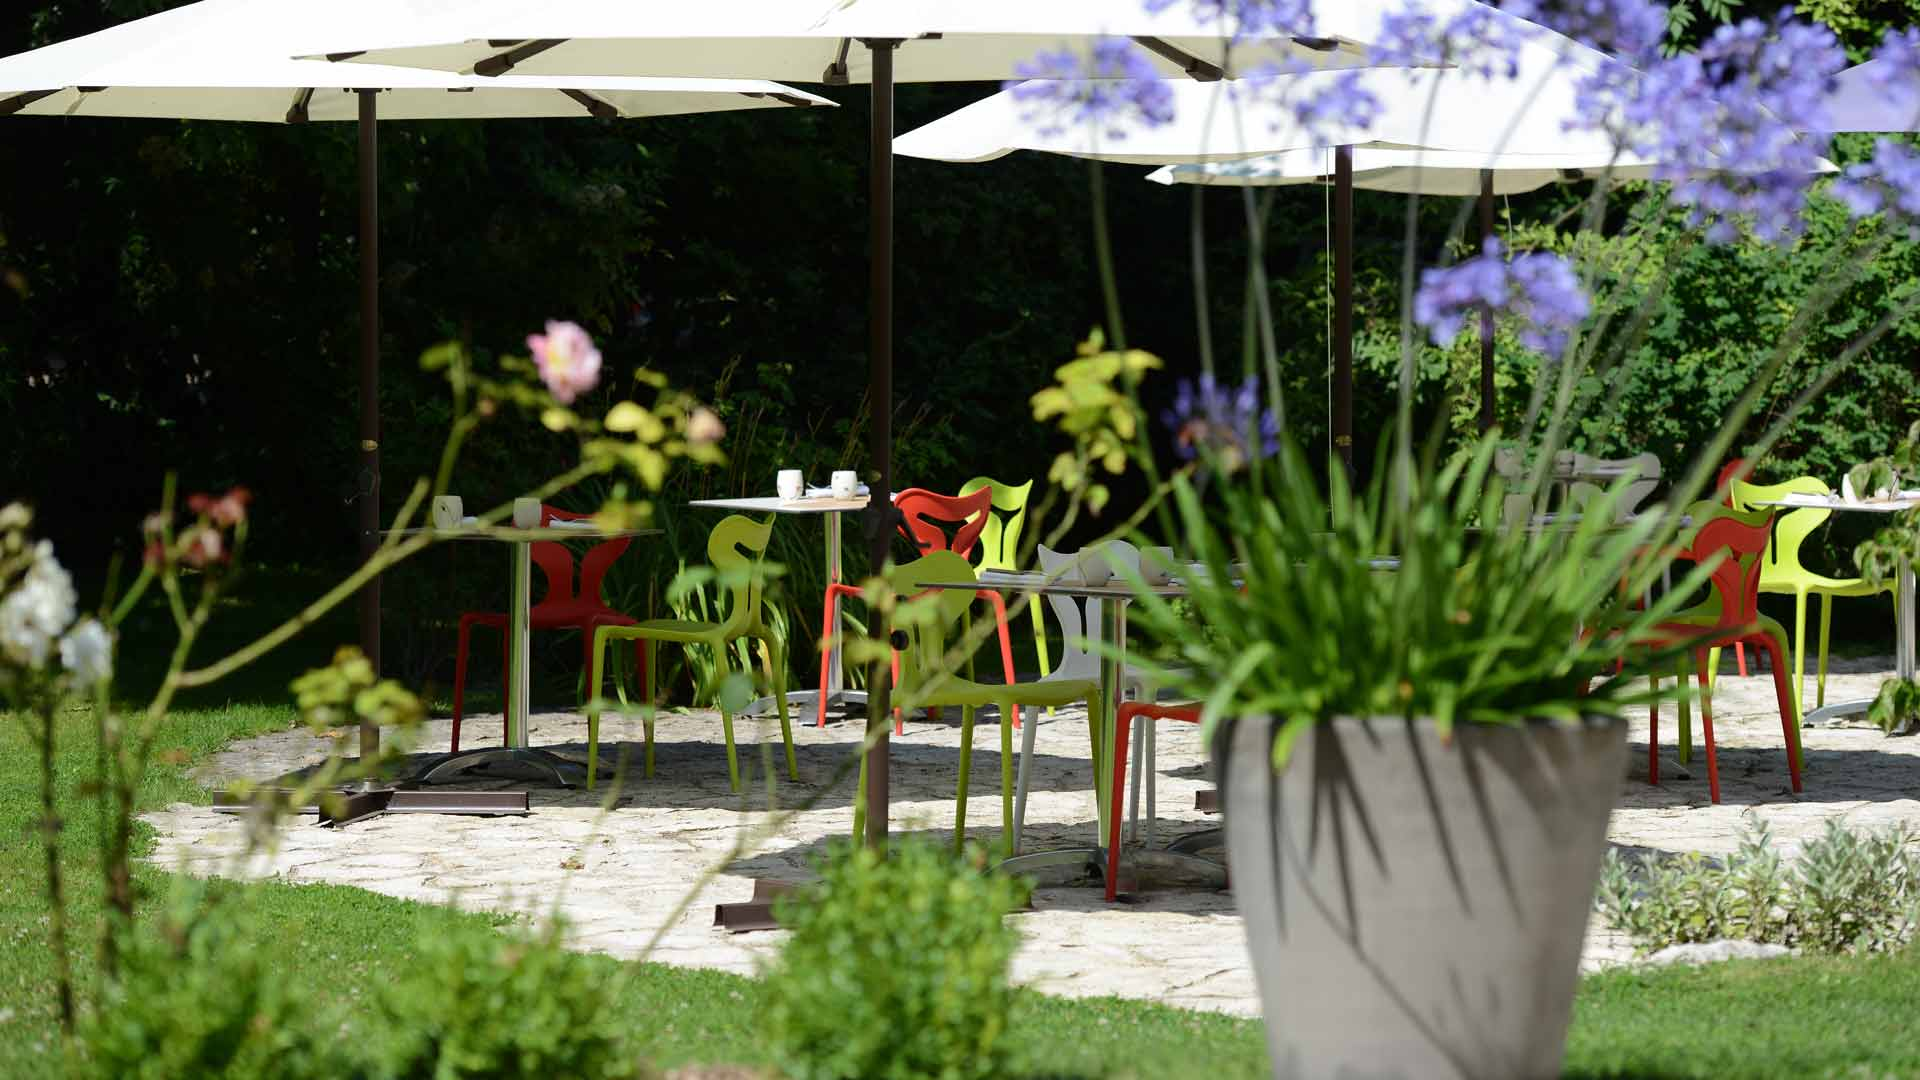 H tel le jardin des plumes stouring in france for Restaurant le jardin domont 95